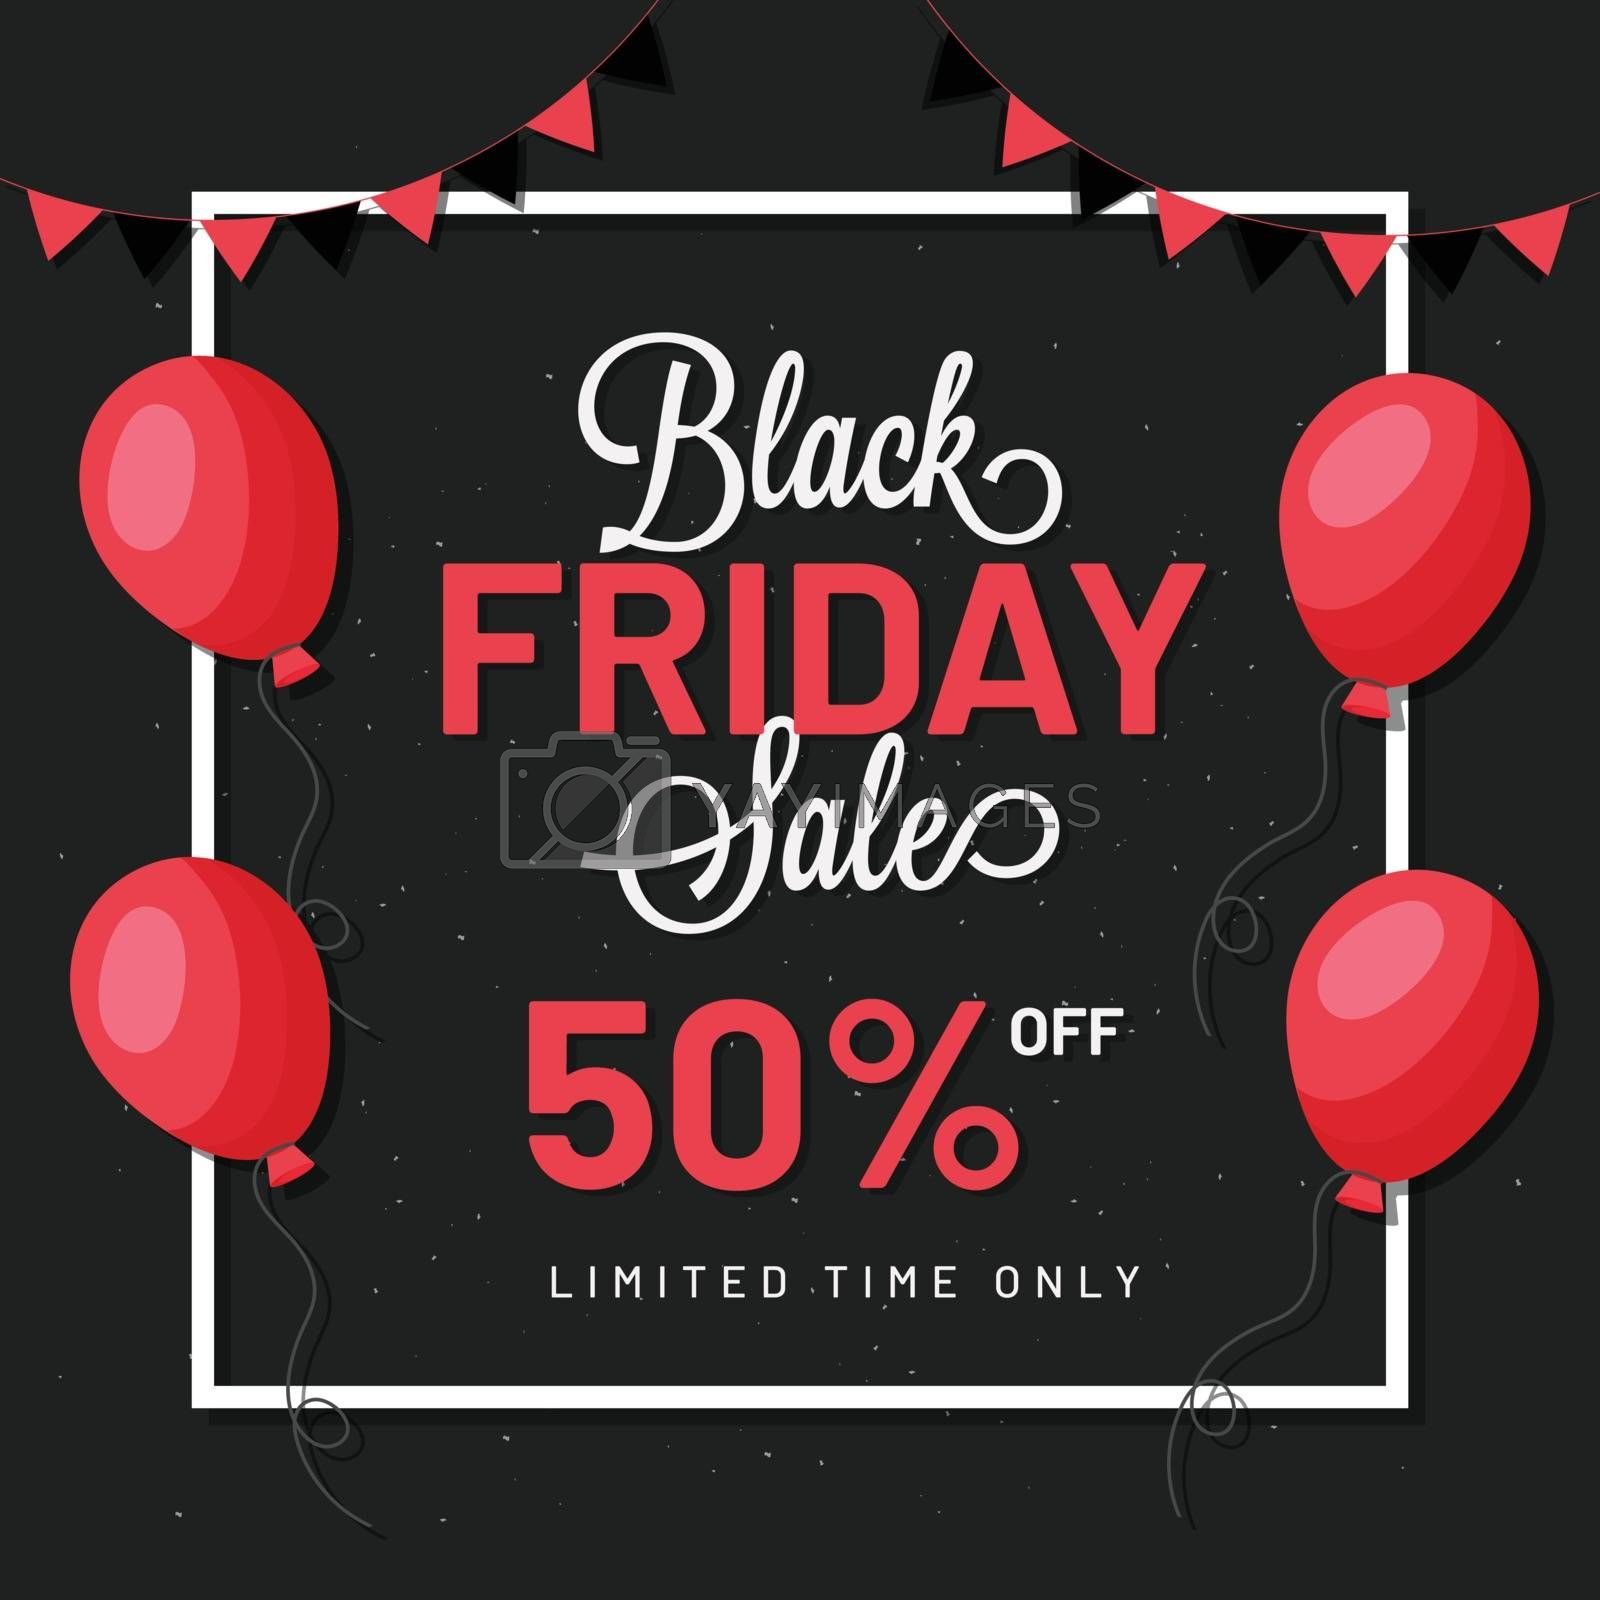 Black Friday Sale template with 50% Off, decorated with red balloons and bunting flags on black background.